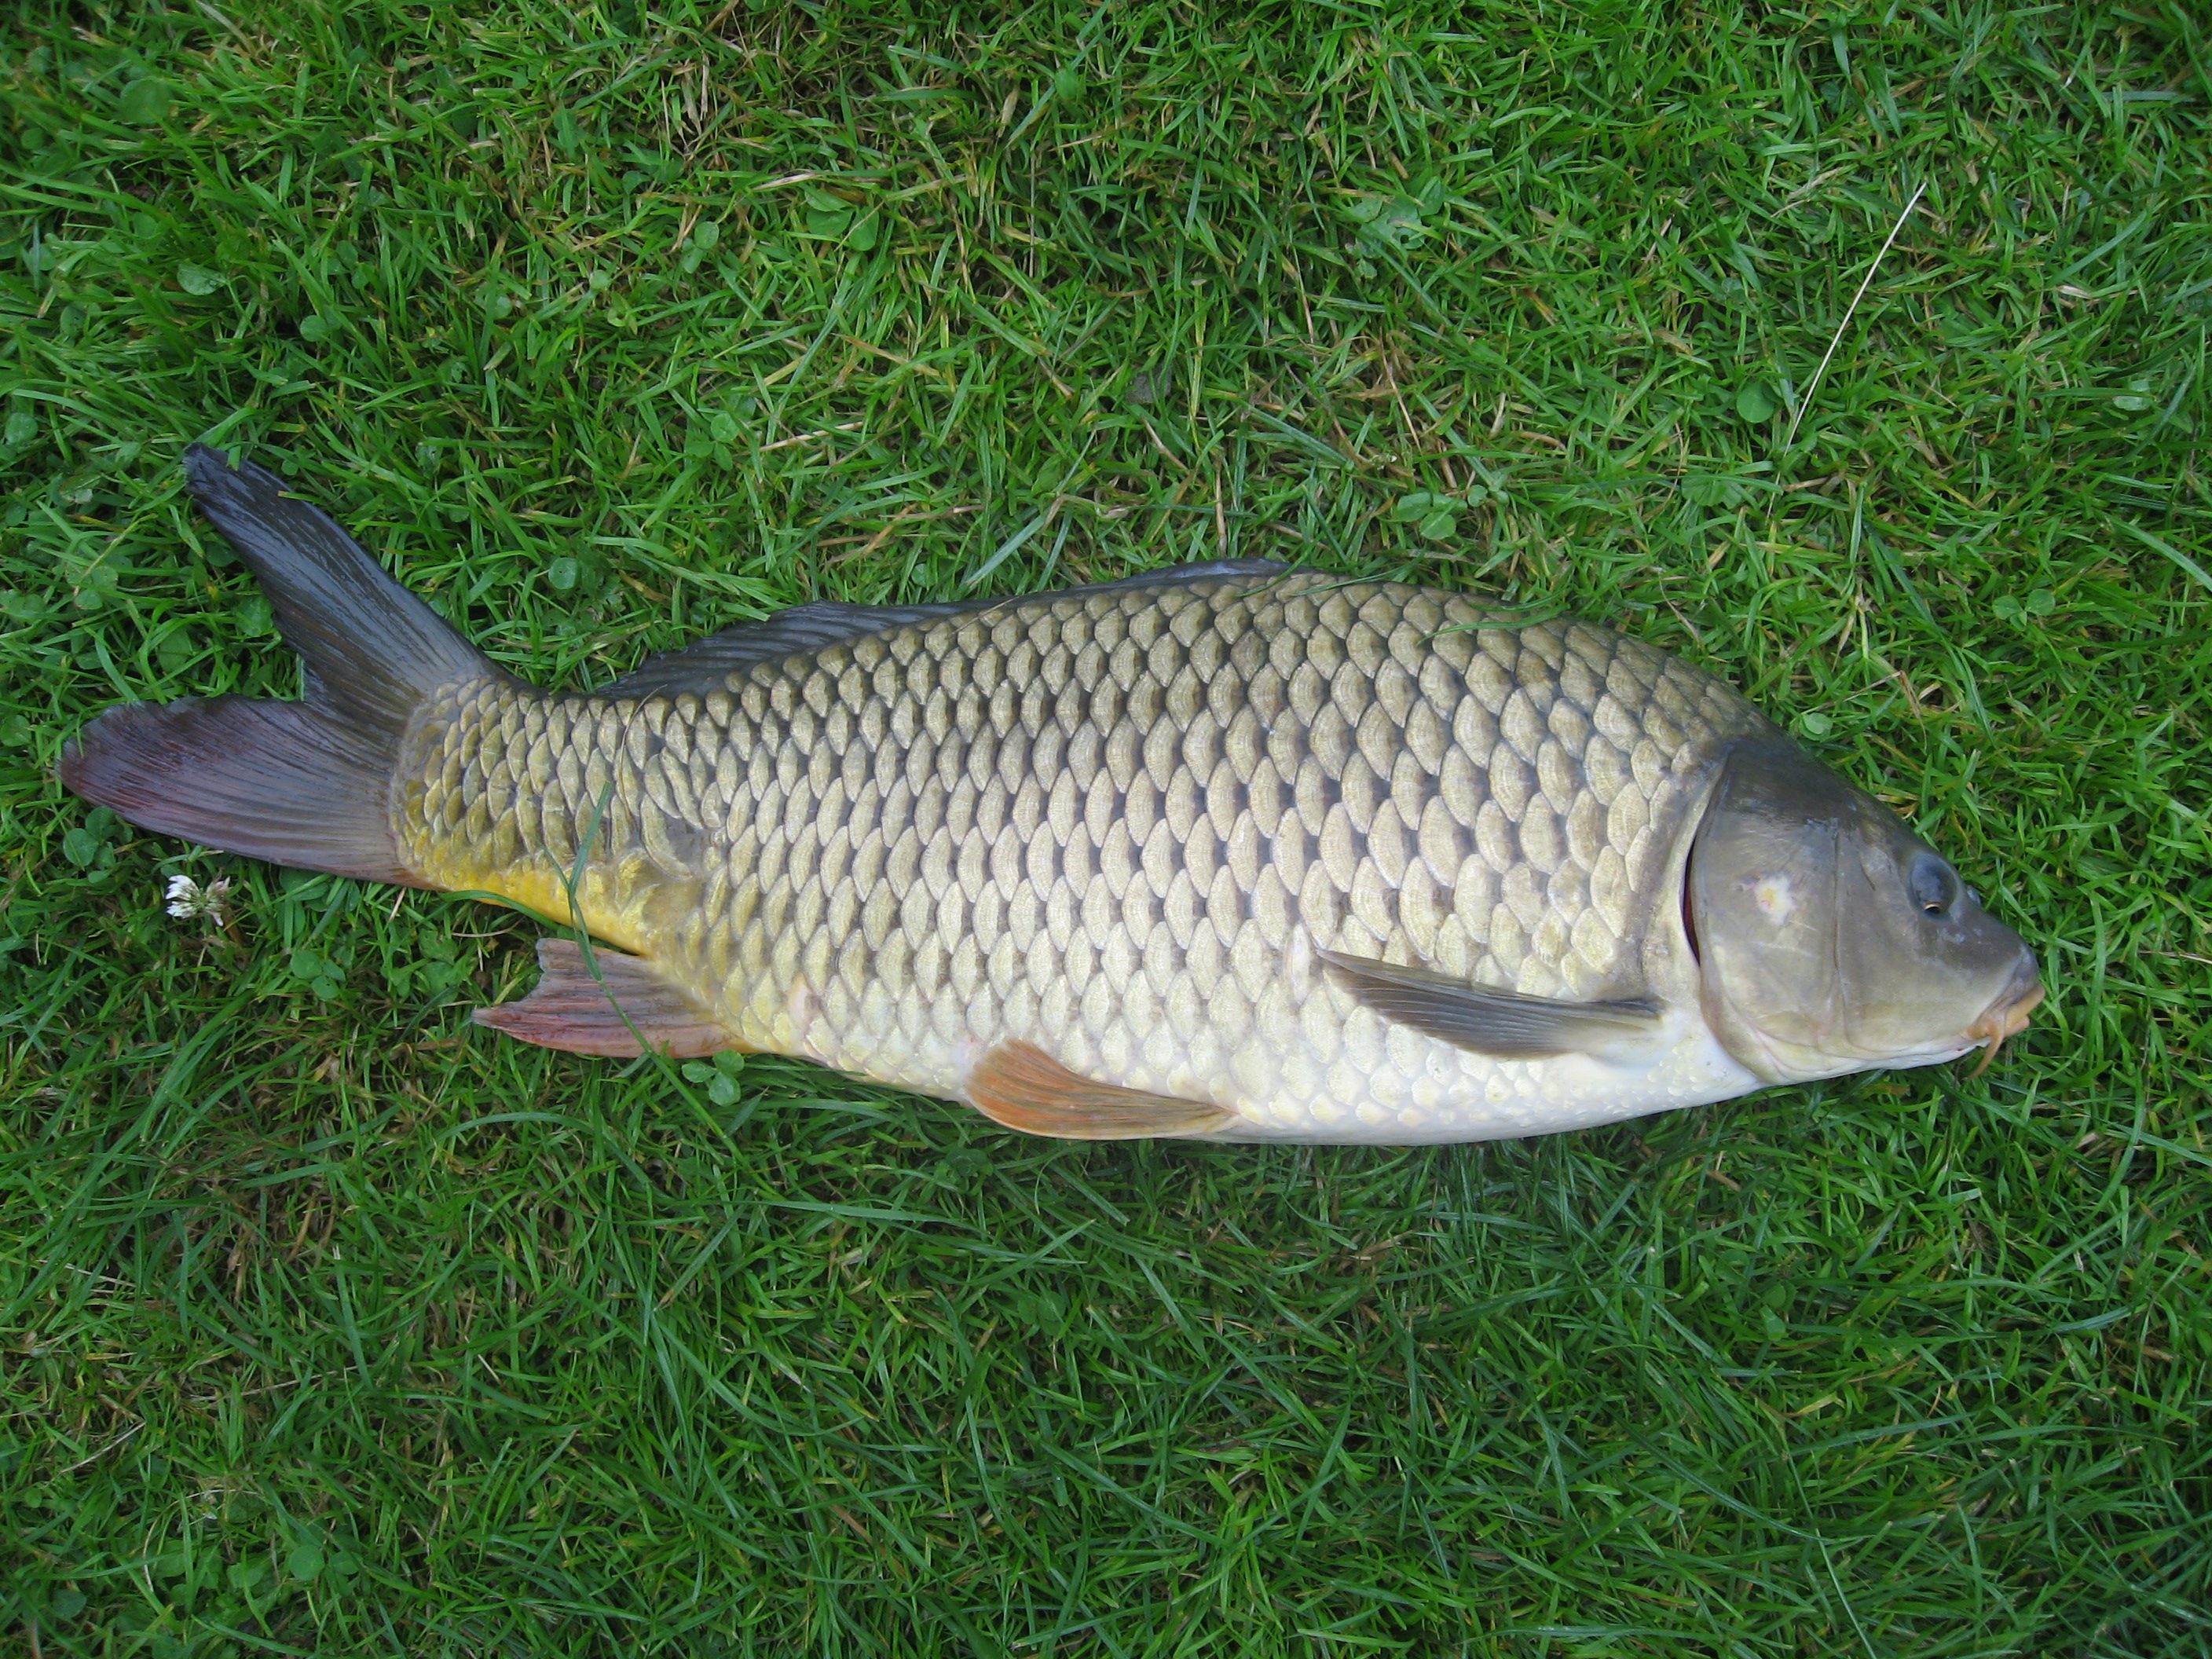 Common carp wallpaper